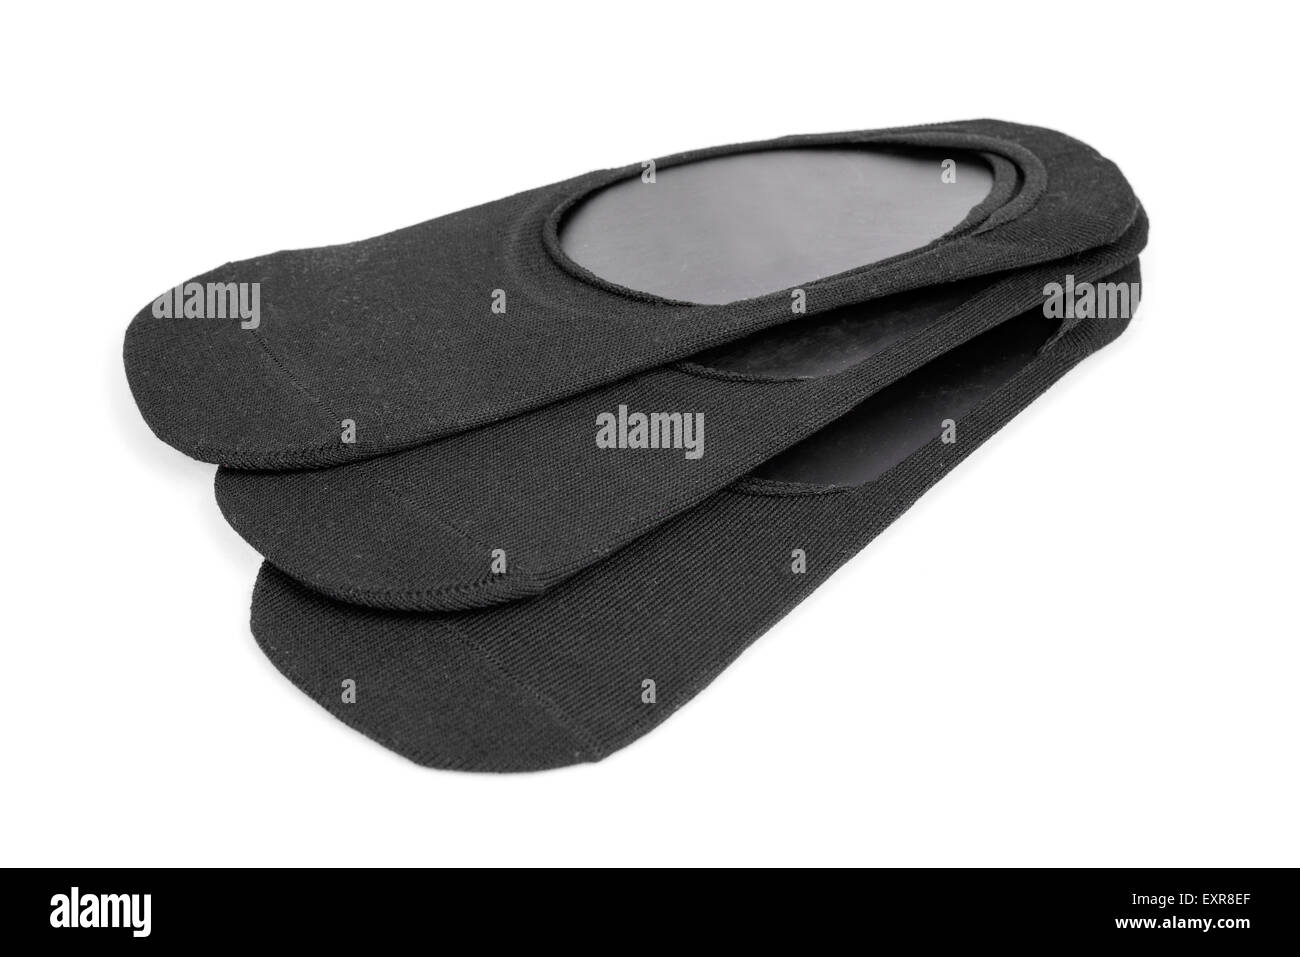 Non Skid Stock Photos Amp Non Skid Stock Images Alamy